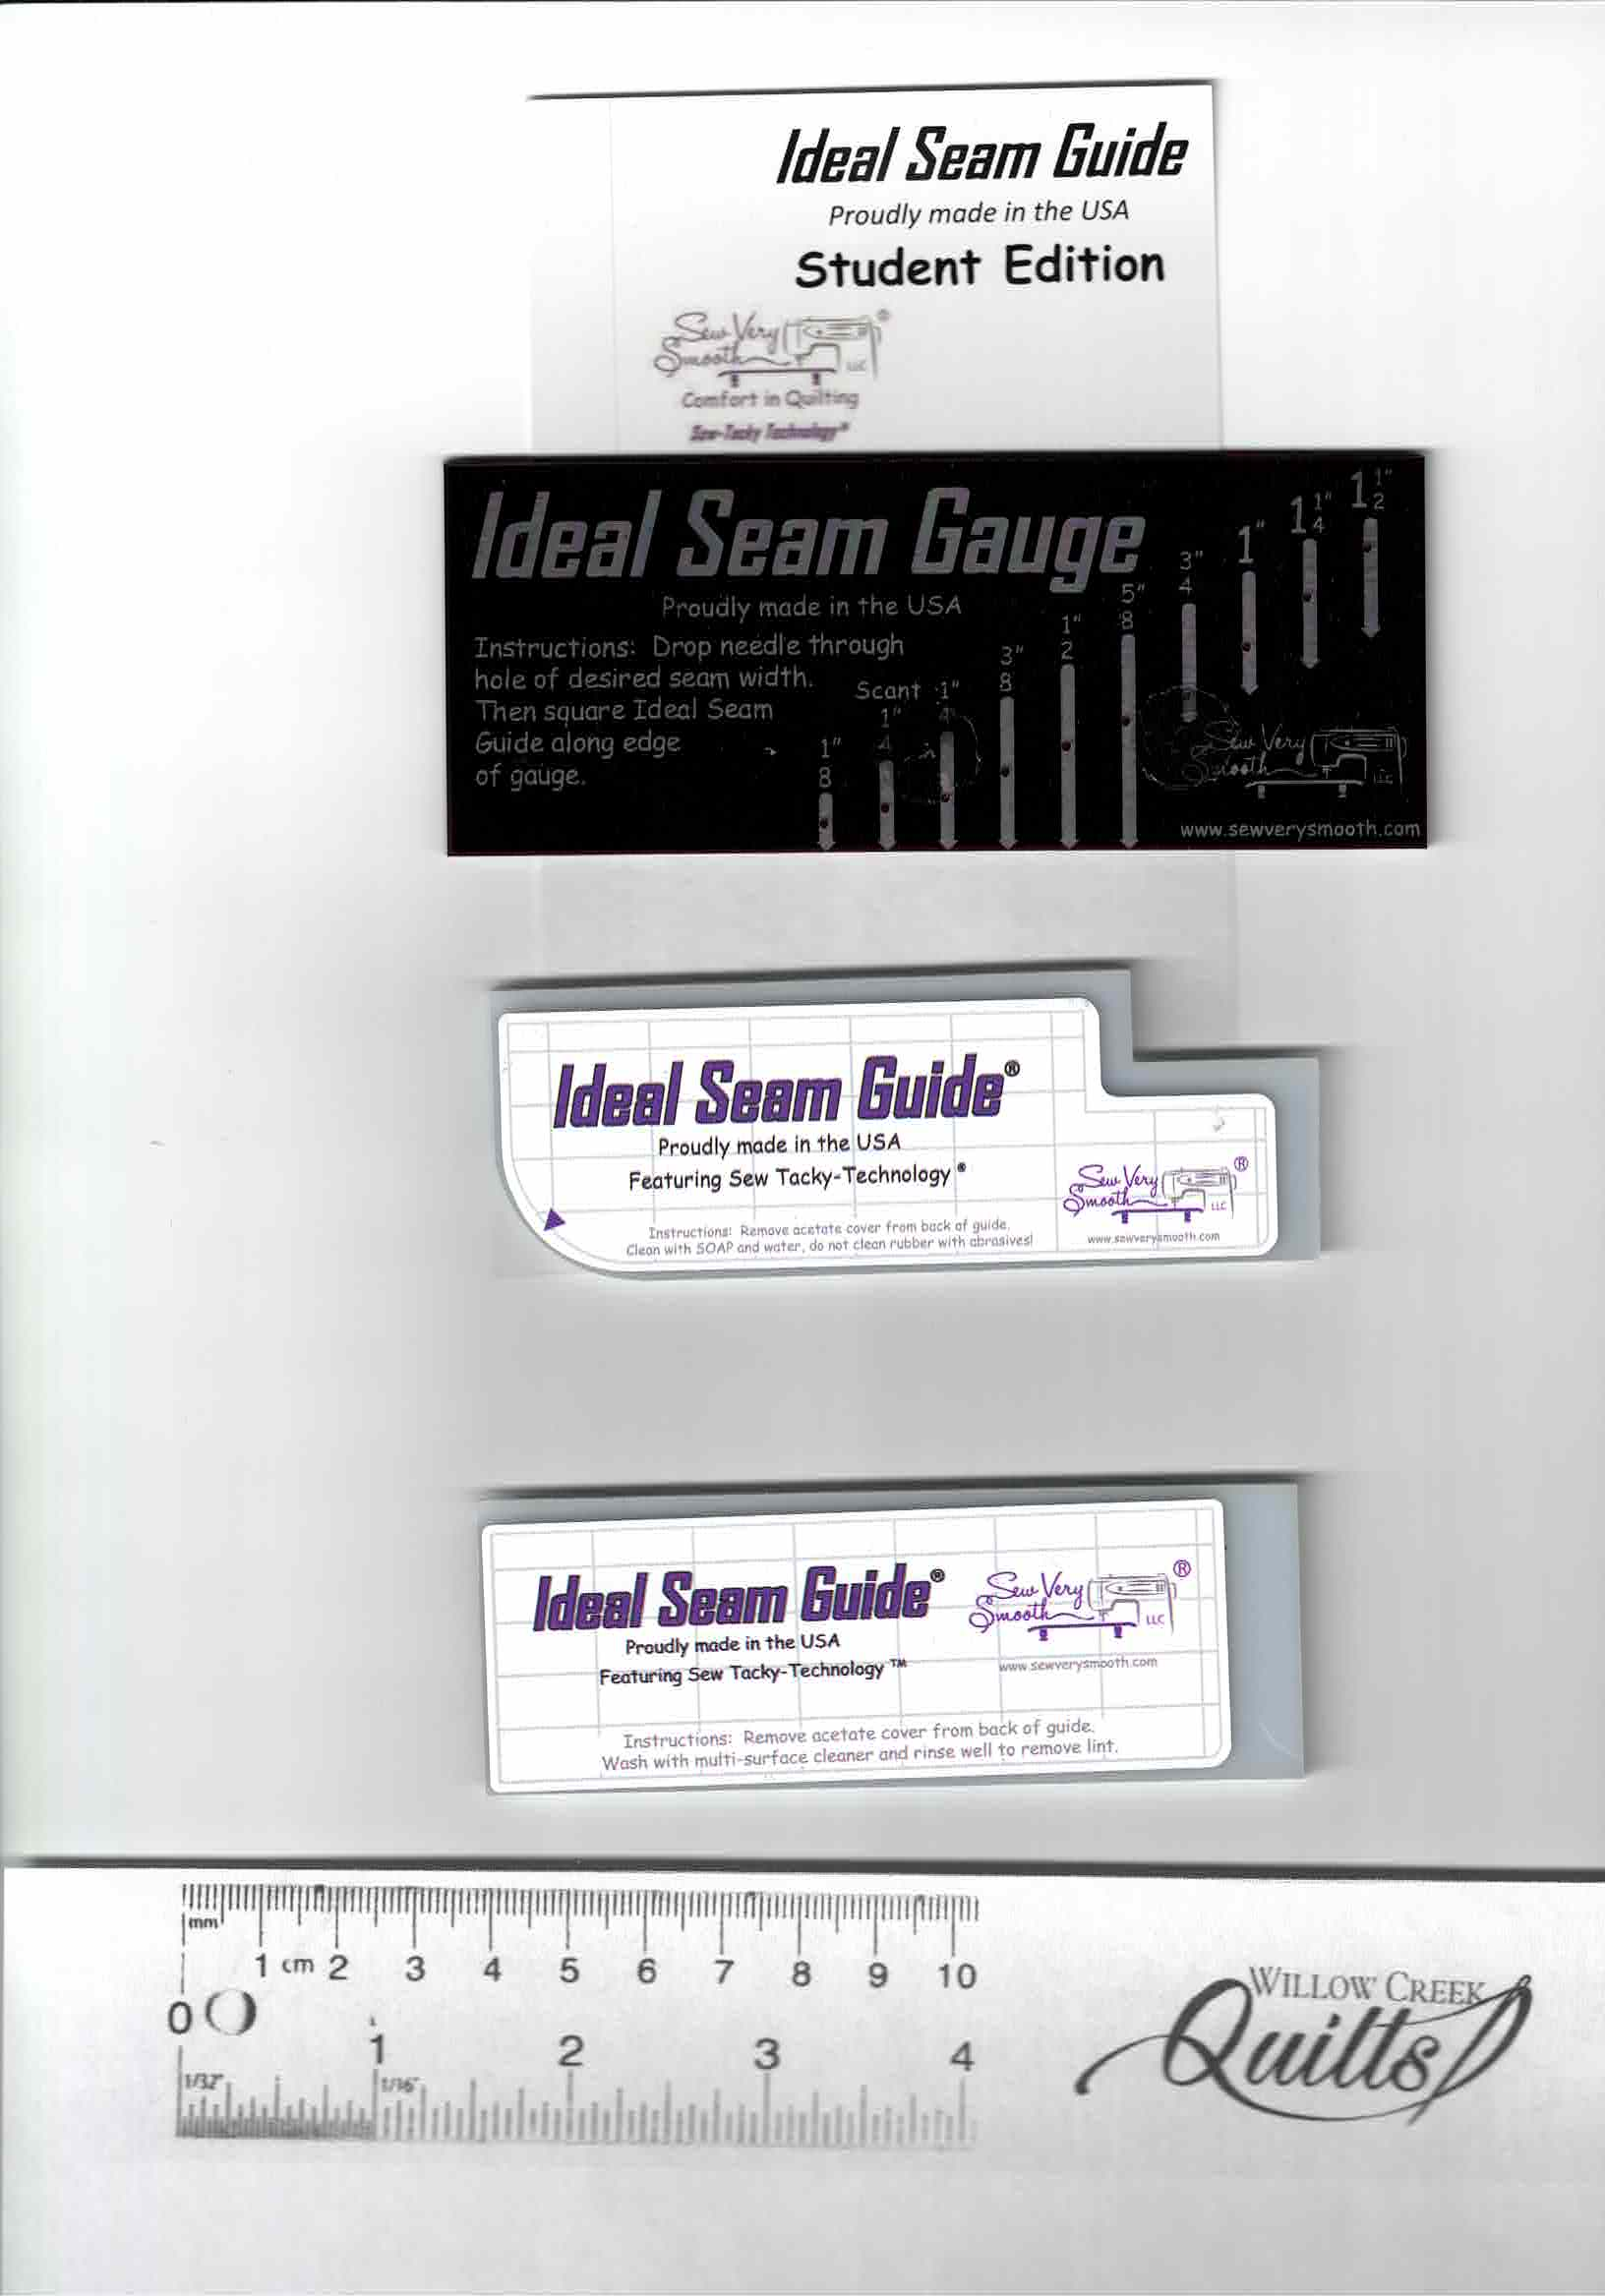 Ideal Seam Guide, Student Edition - SVS54961